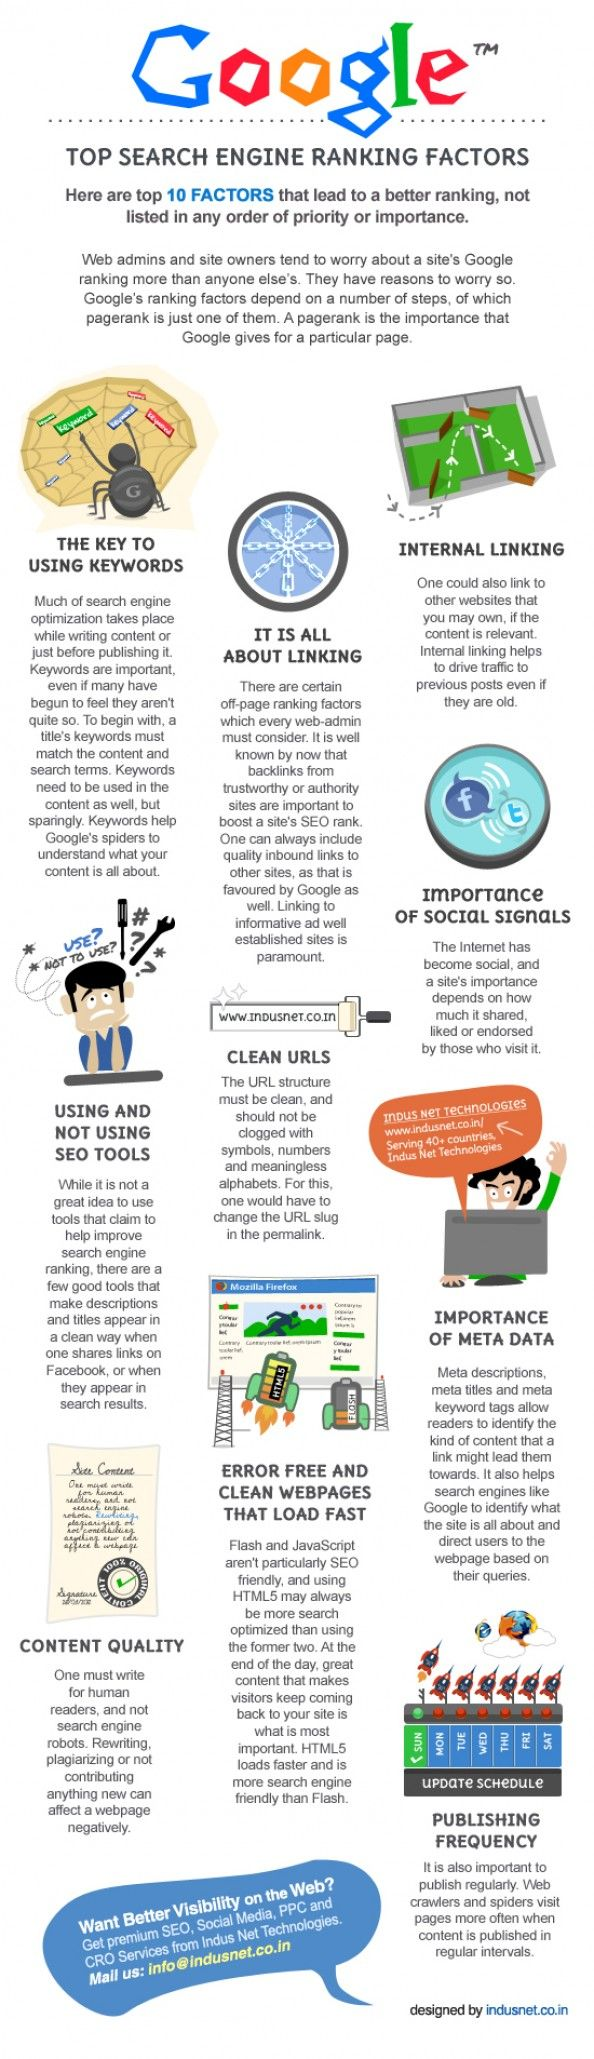 Top 10 Search Engine Ranking Factors #Infographic #SearchEngine